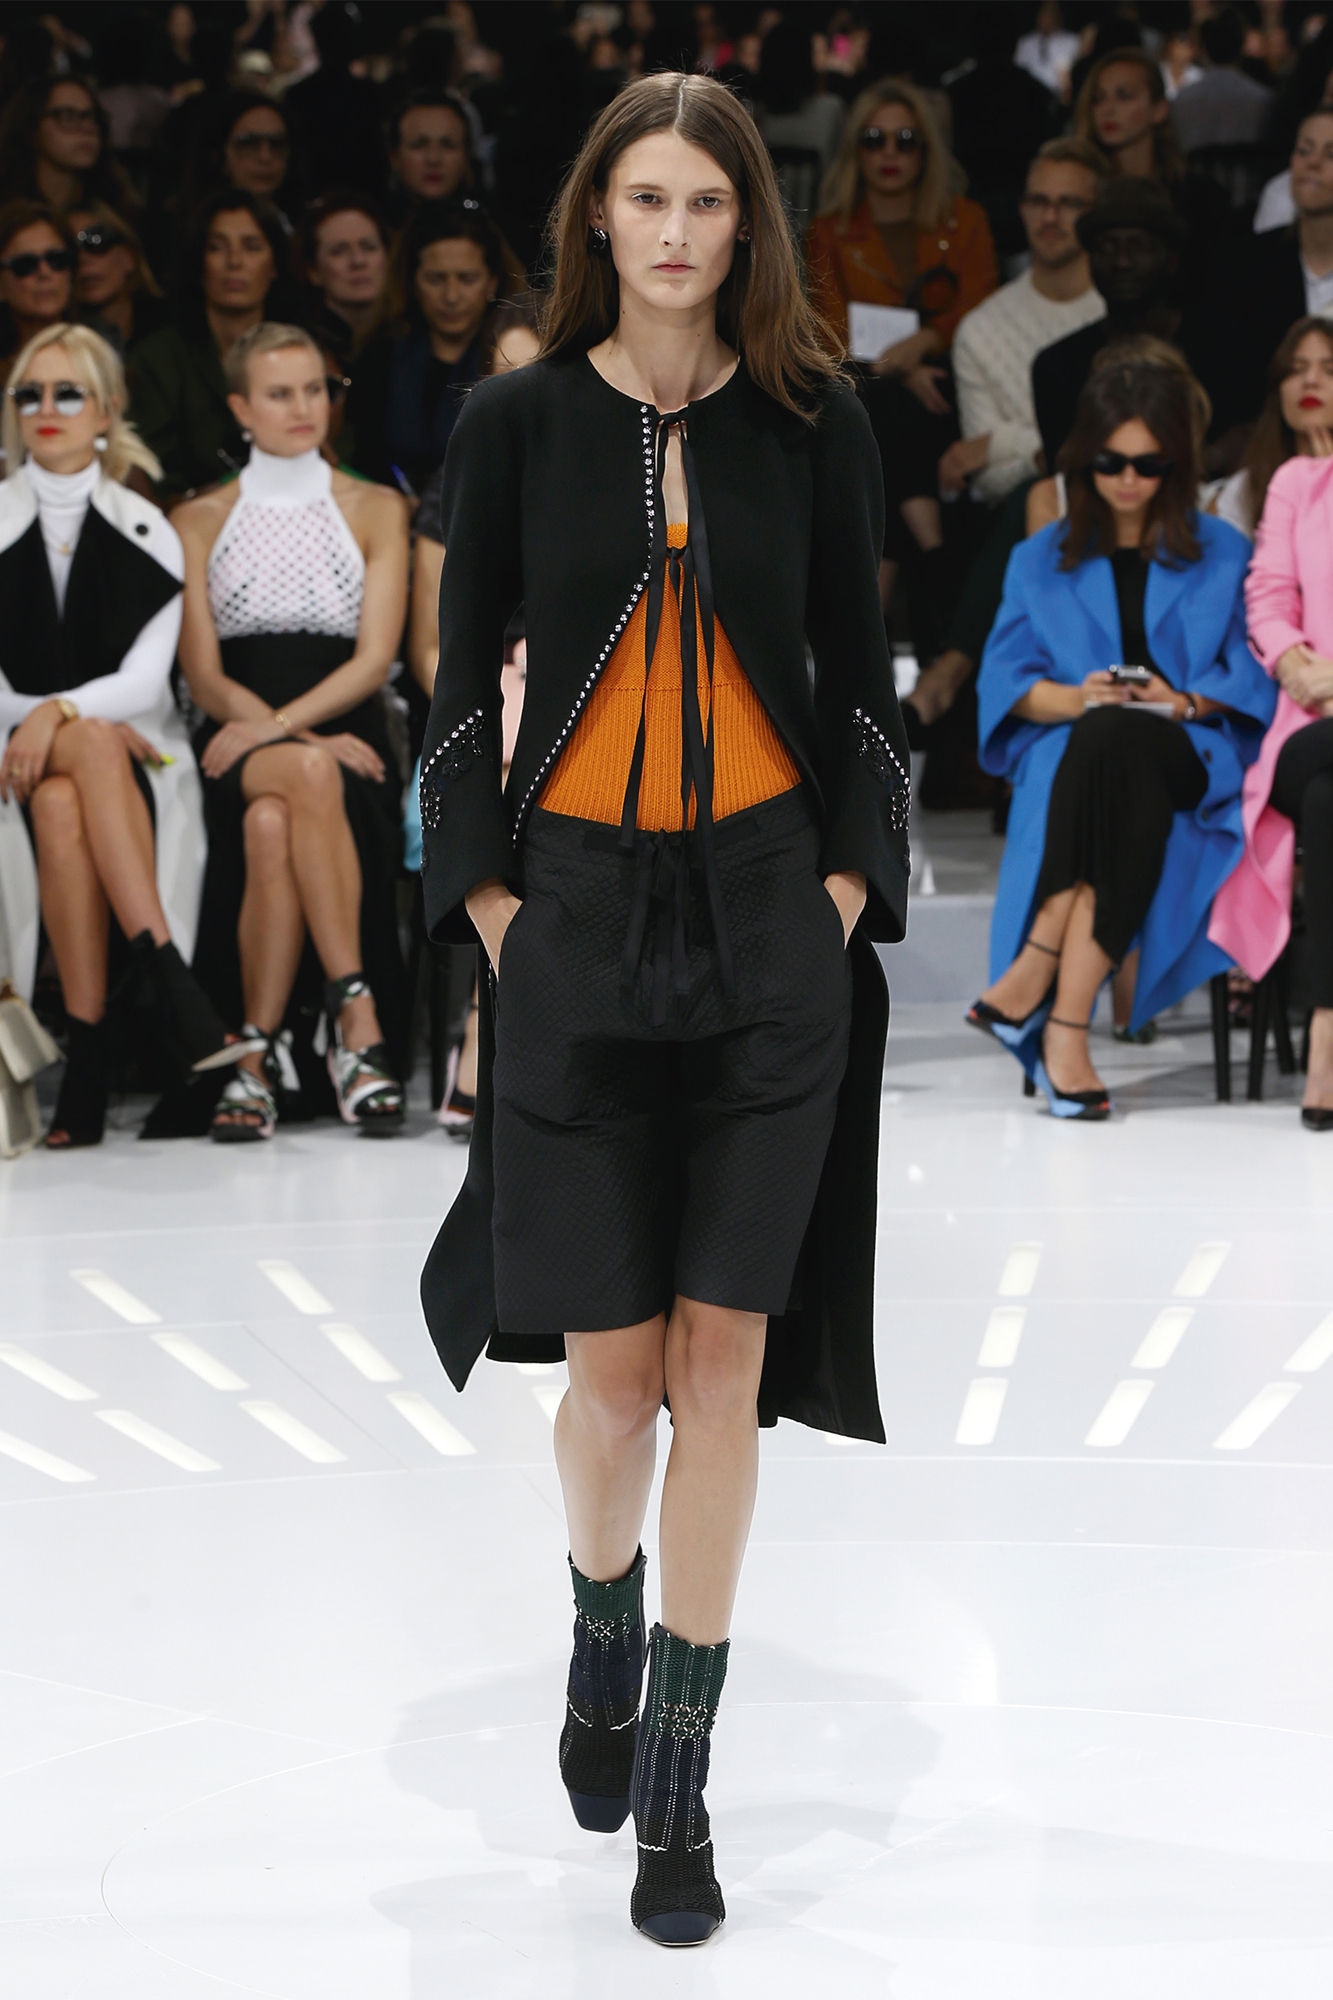 Christian Dior Haute Couture Spring-Summer Ready To Wear Dresses & Accessories Collection 2015-16 (29)